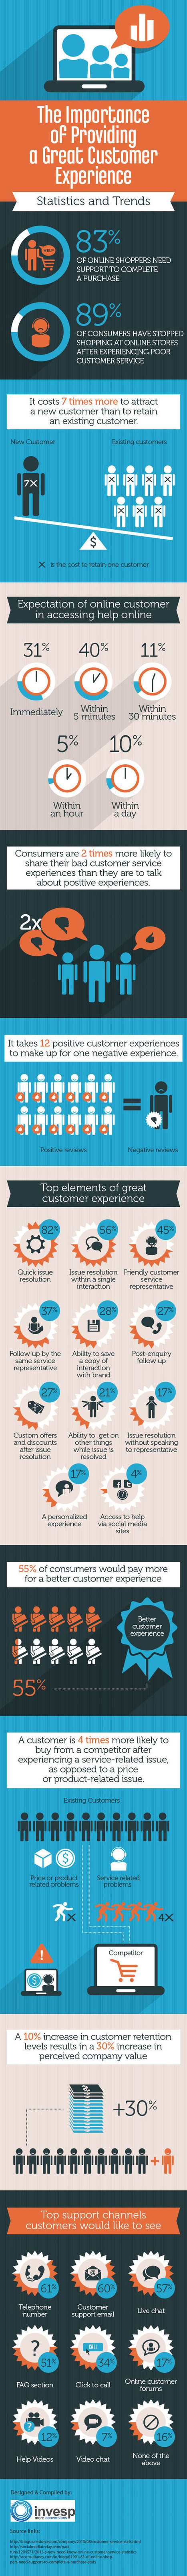 The Importance of Providing a Great Customer Experience [Infographic] - Invesp | #TheMarketingTechAlert | Customer Experience | Scoop.it